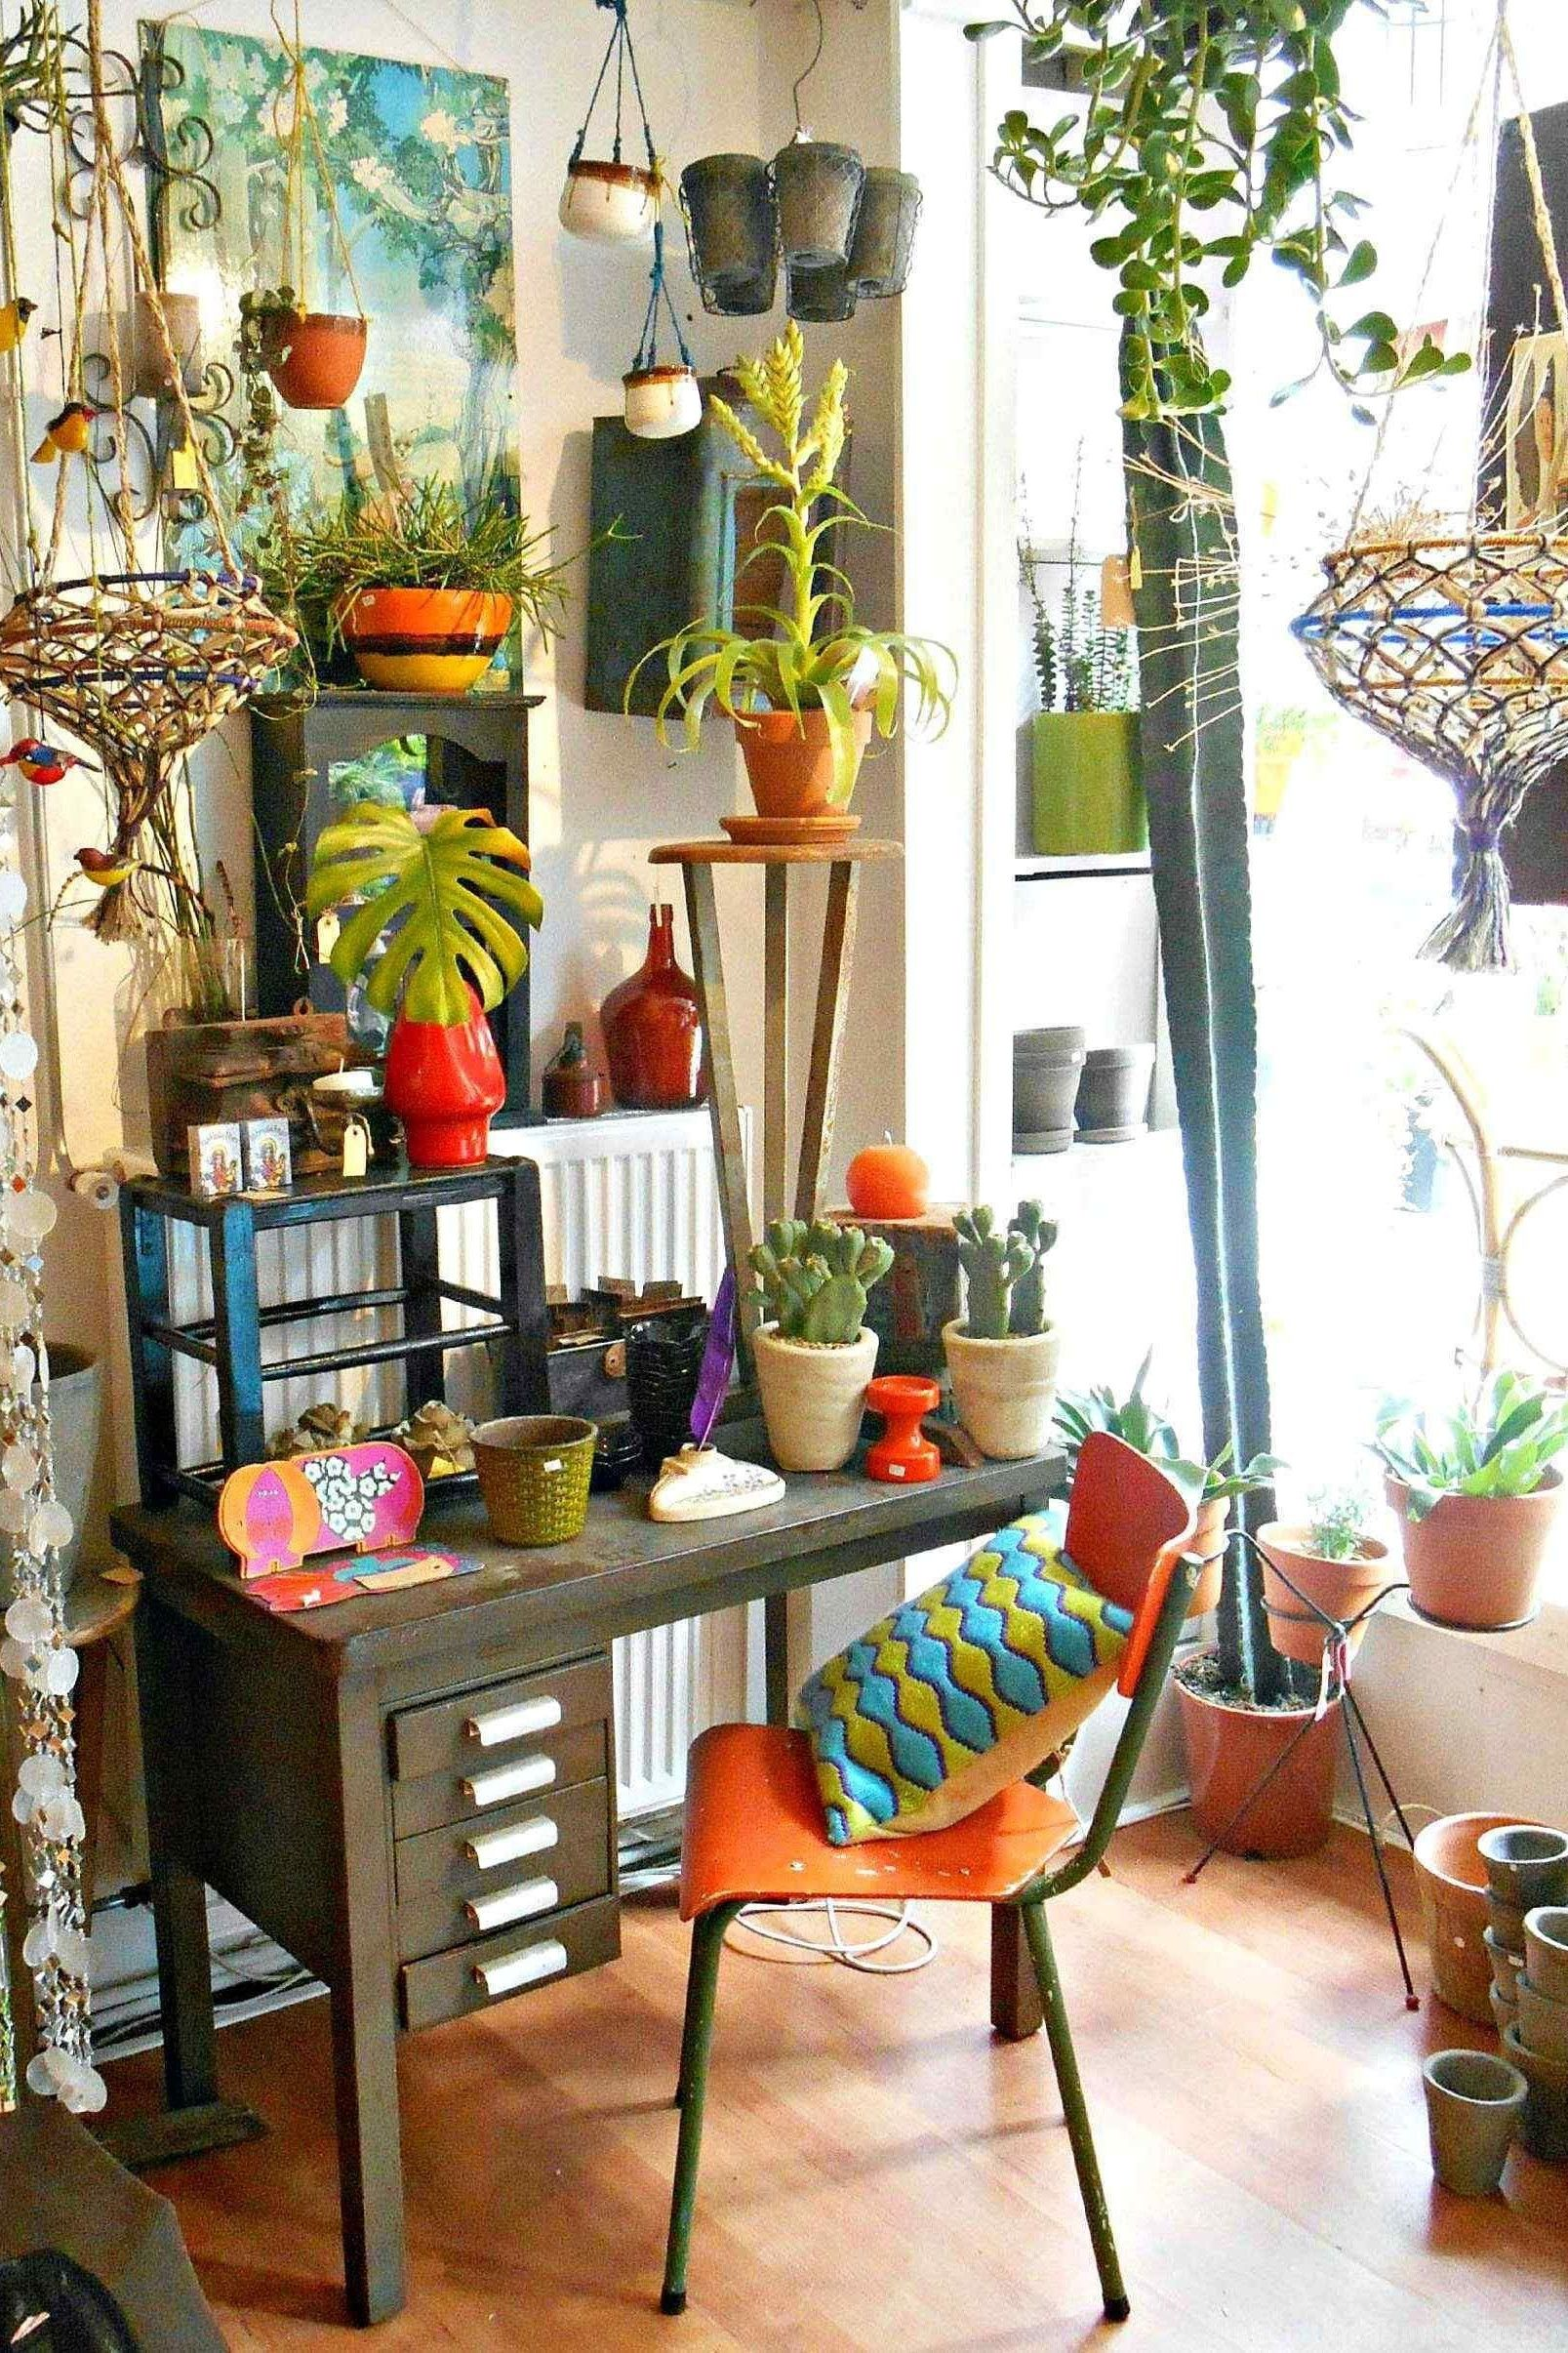 Bohemian Home Decor And Other Products